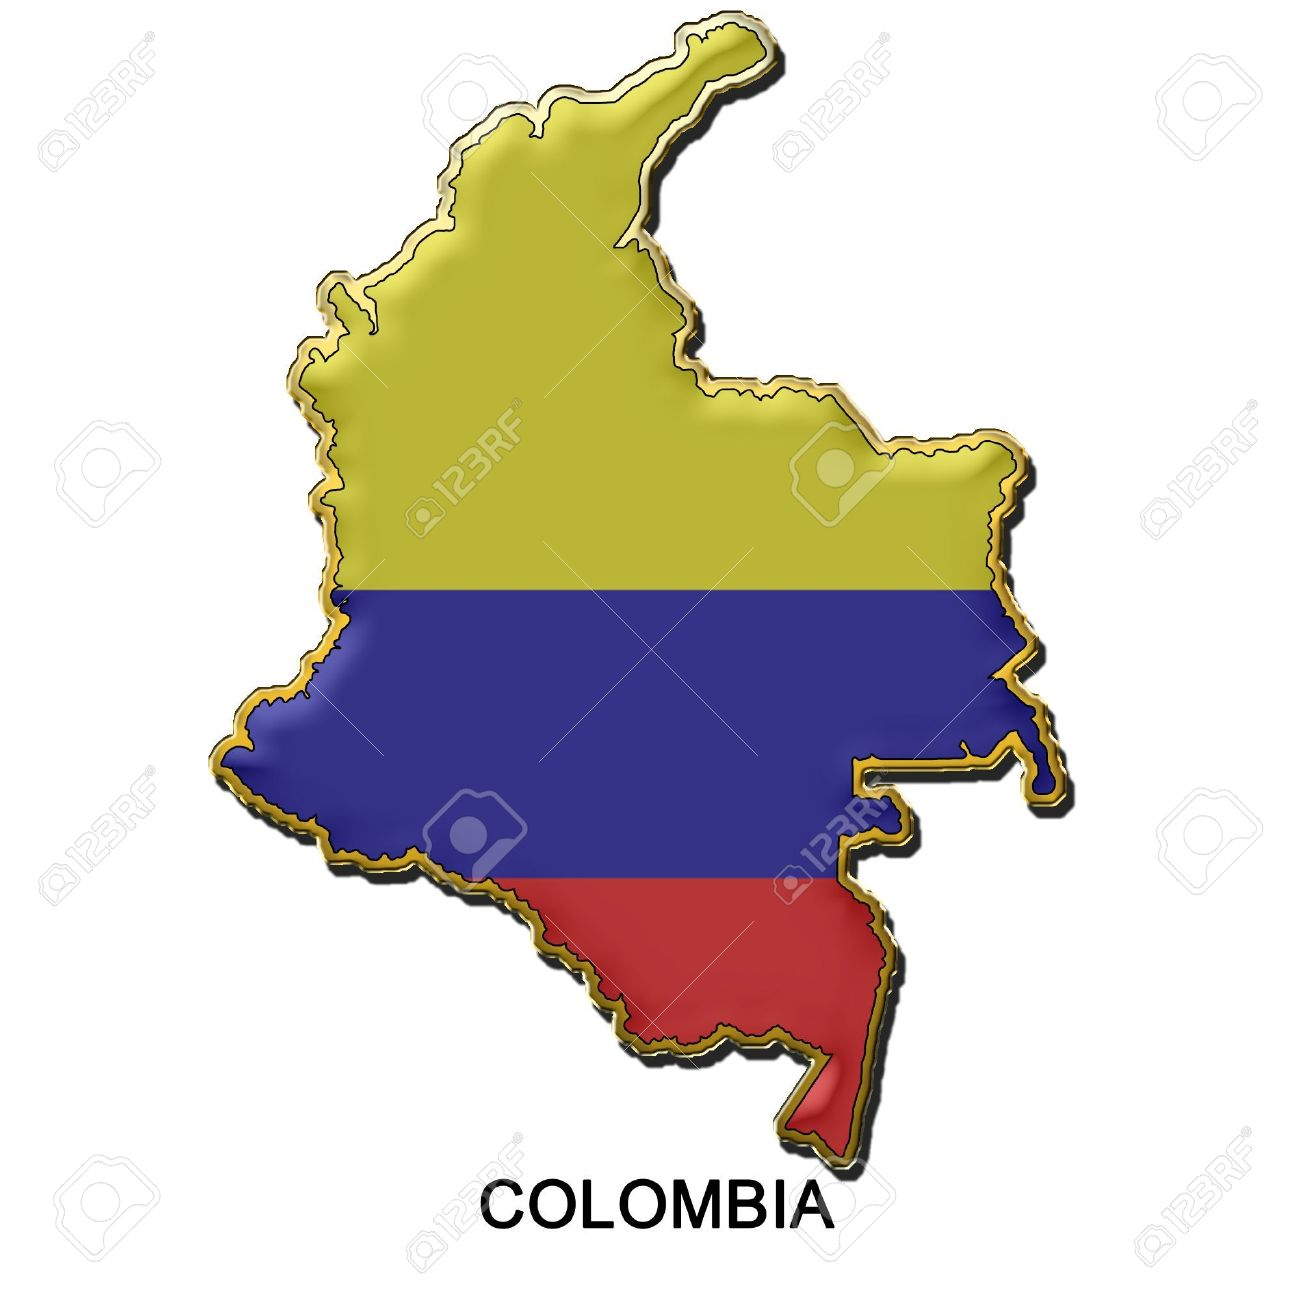 Colombia Map Clipart.